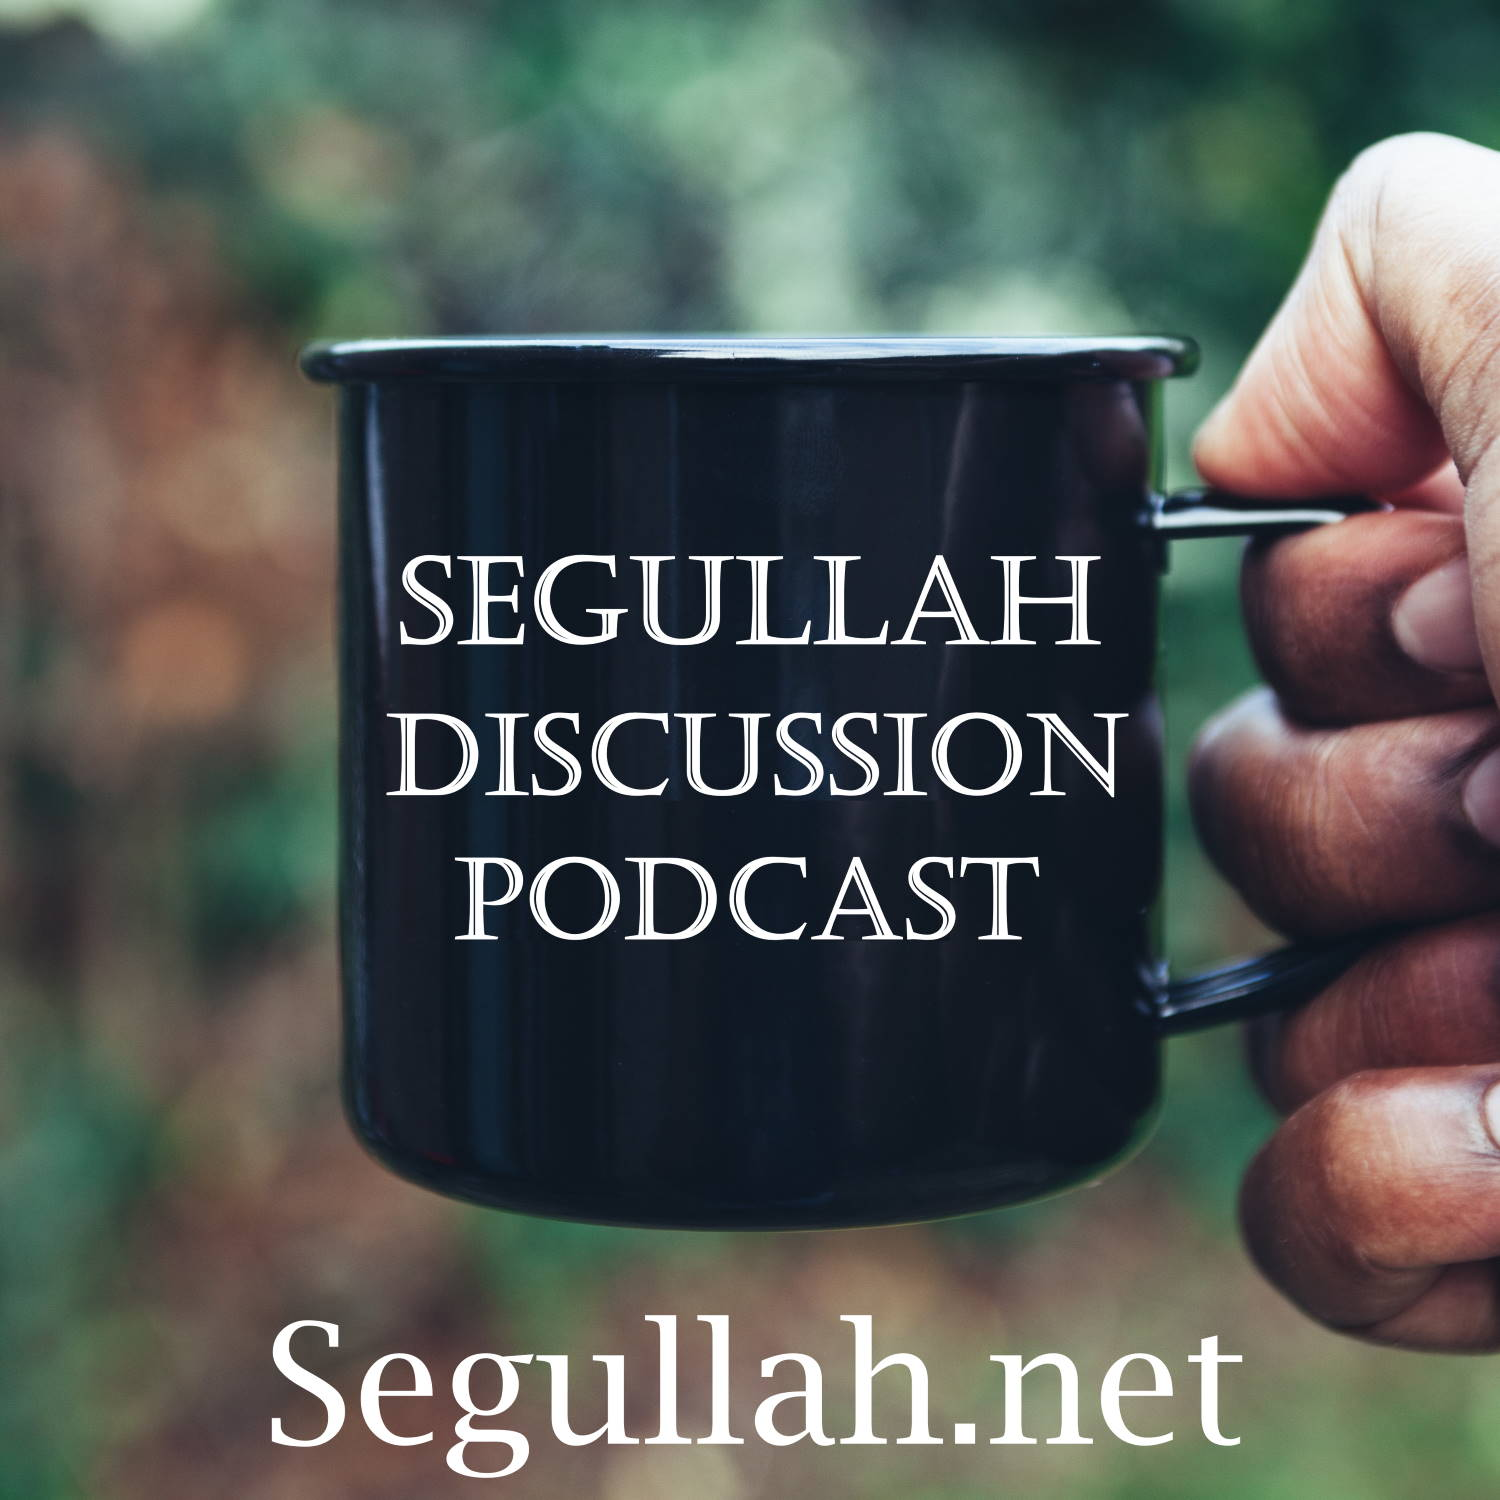 Segullah Discussion Podcast